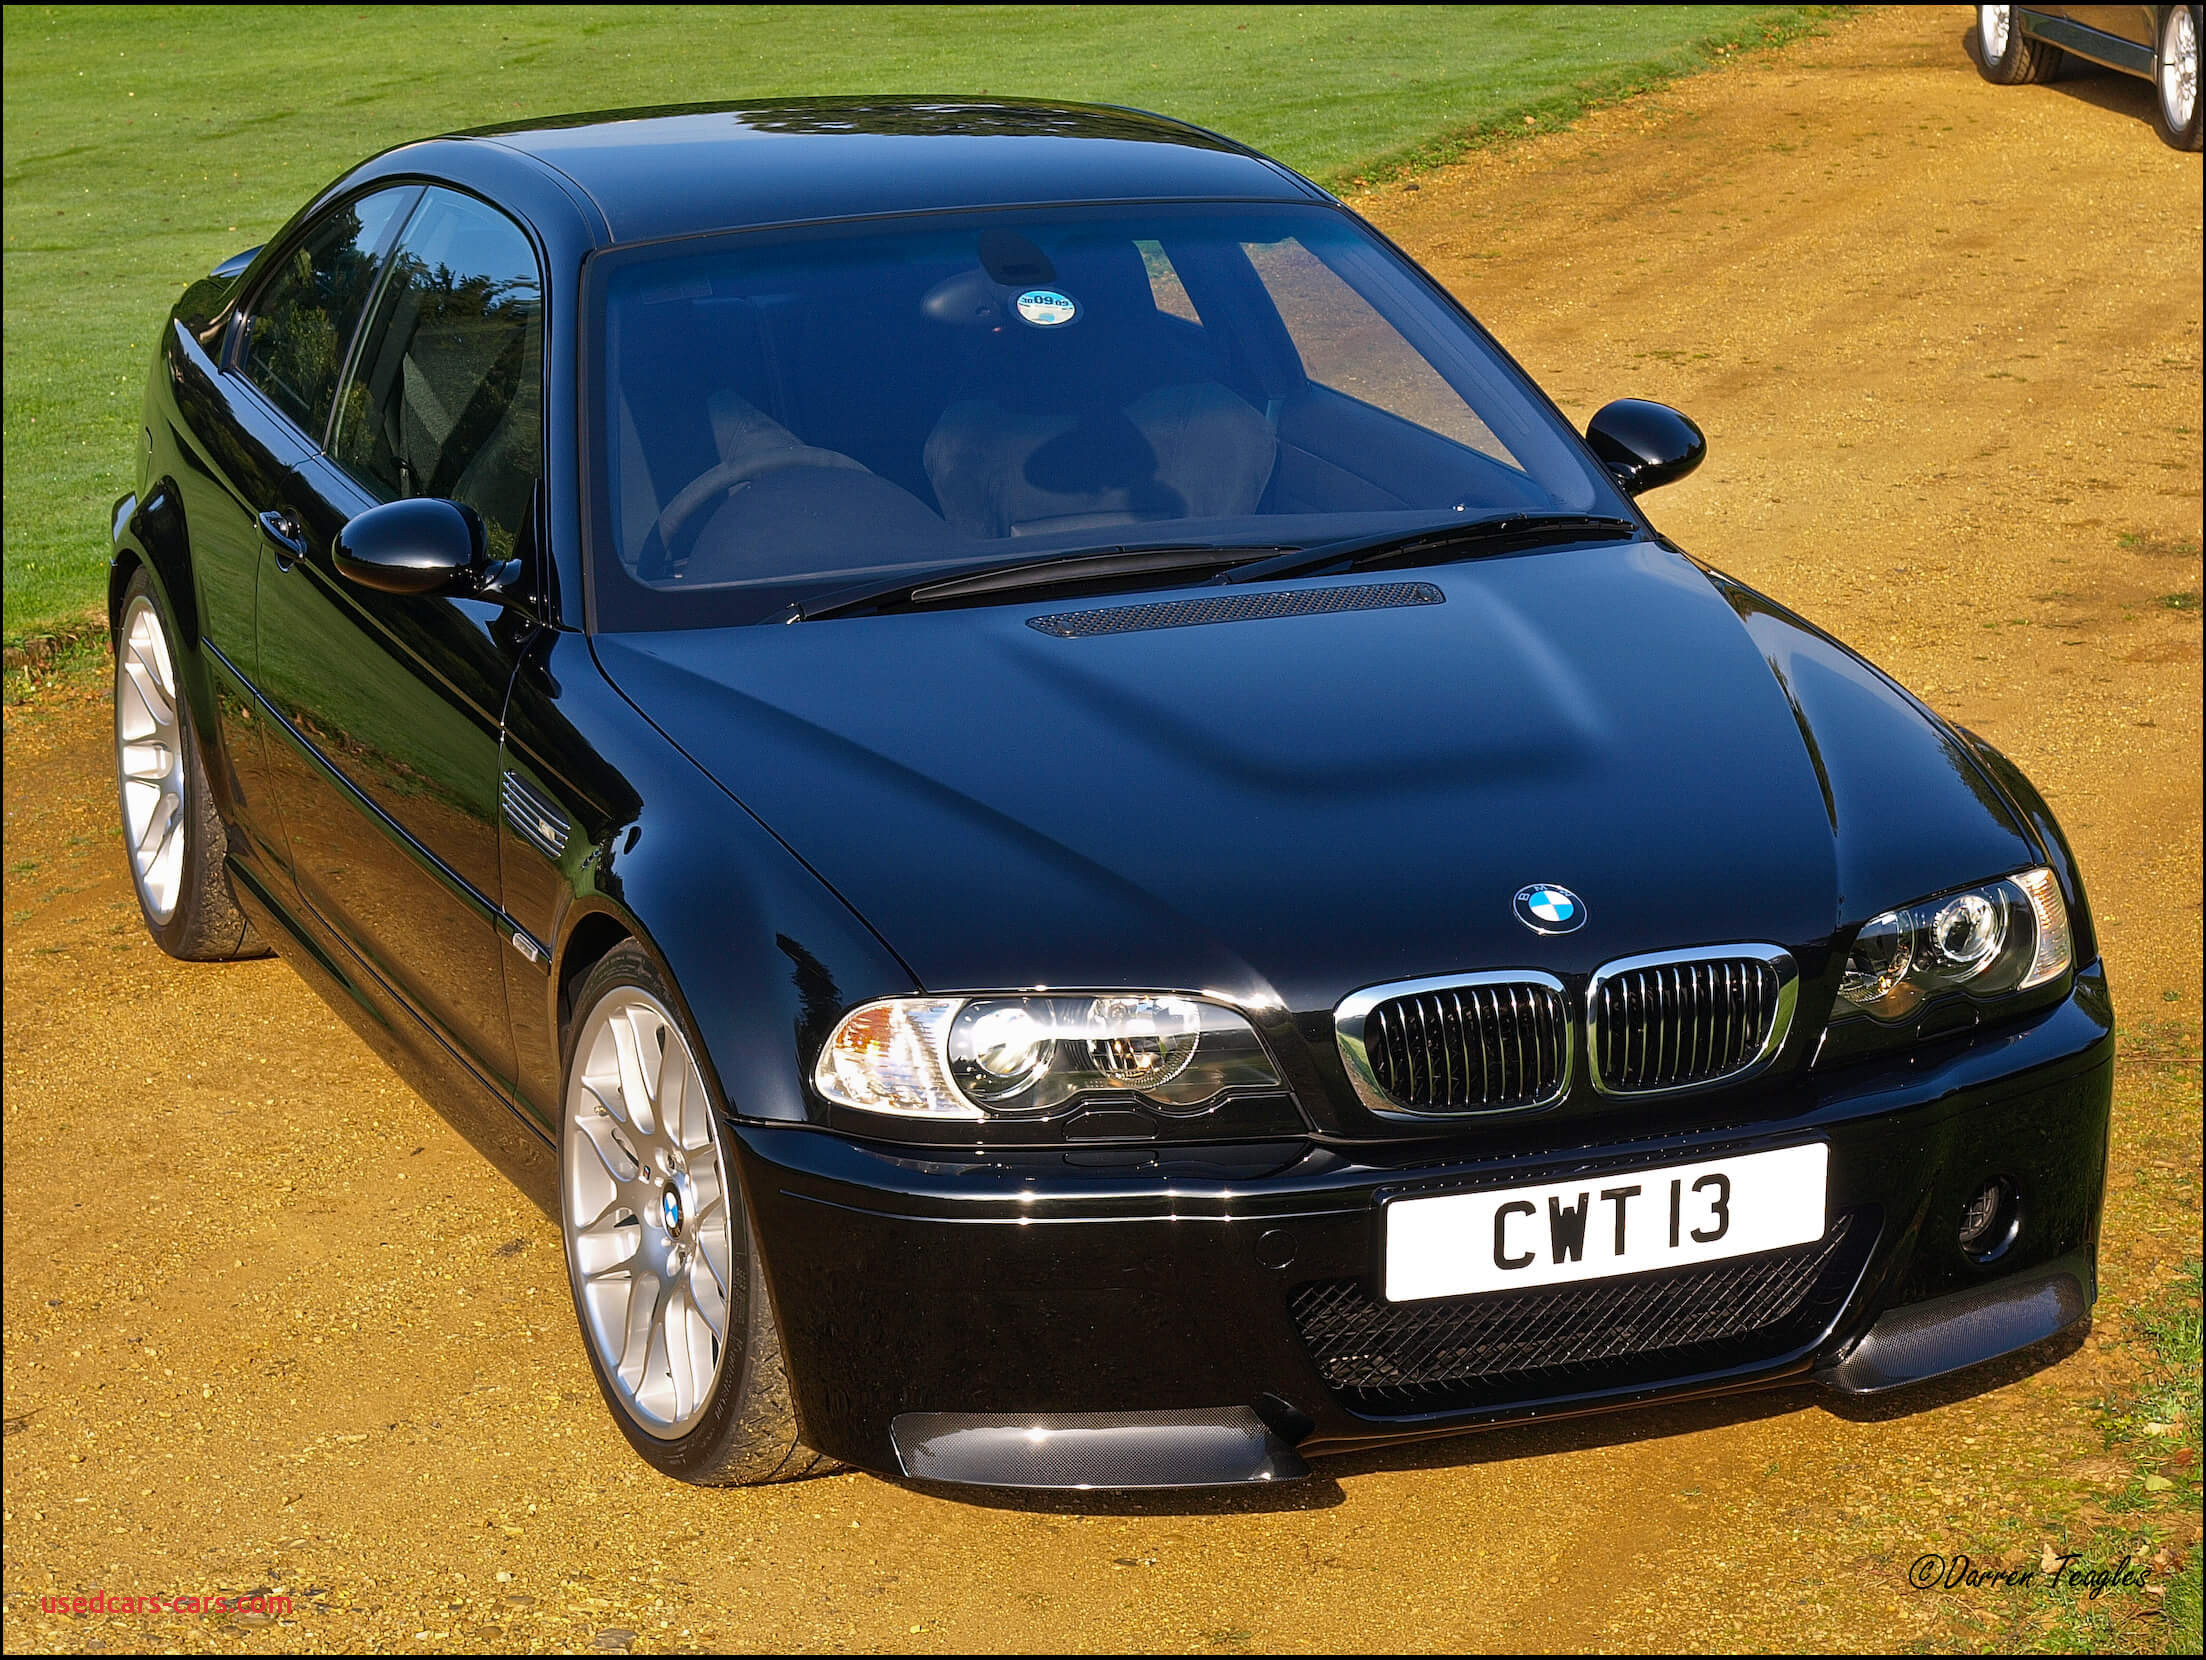 Bmw M3 Csl E46 Lovely Video the Bmw M3 E46 Film Everything About the Third